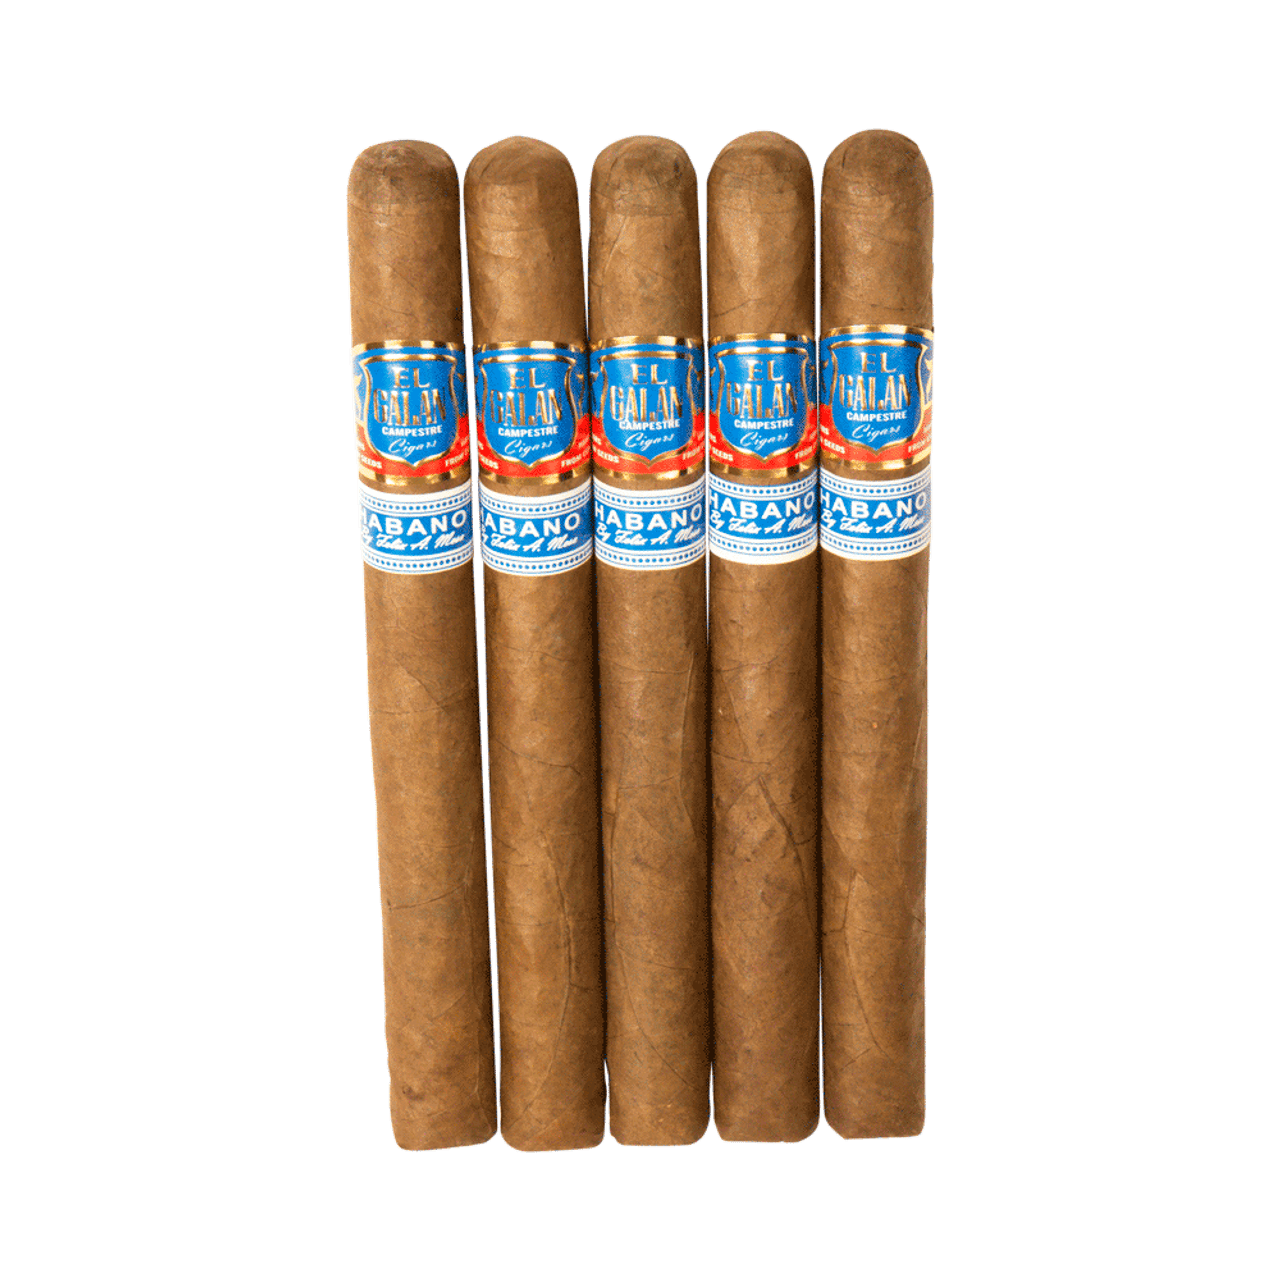 El Galan Campestre Double Corona Cigars - 7.5 x 50 (Pack of 5)